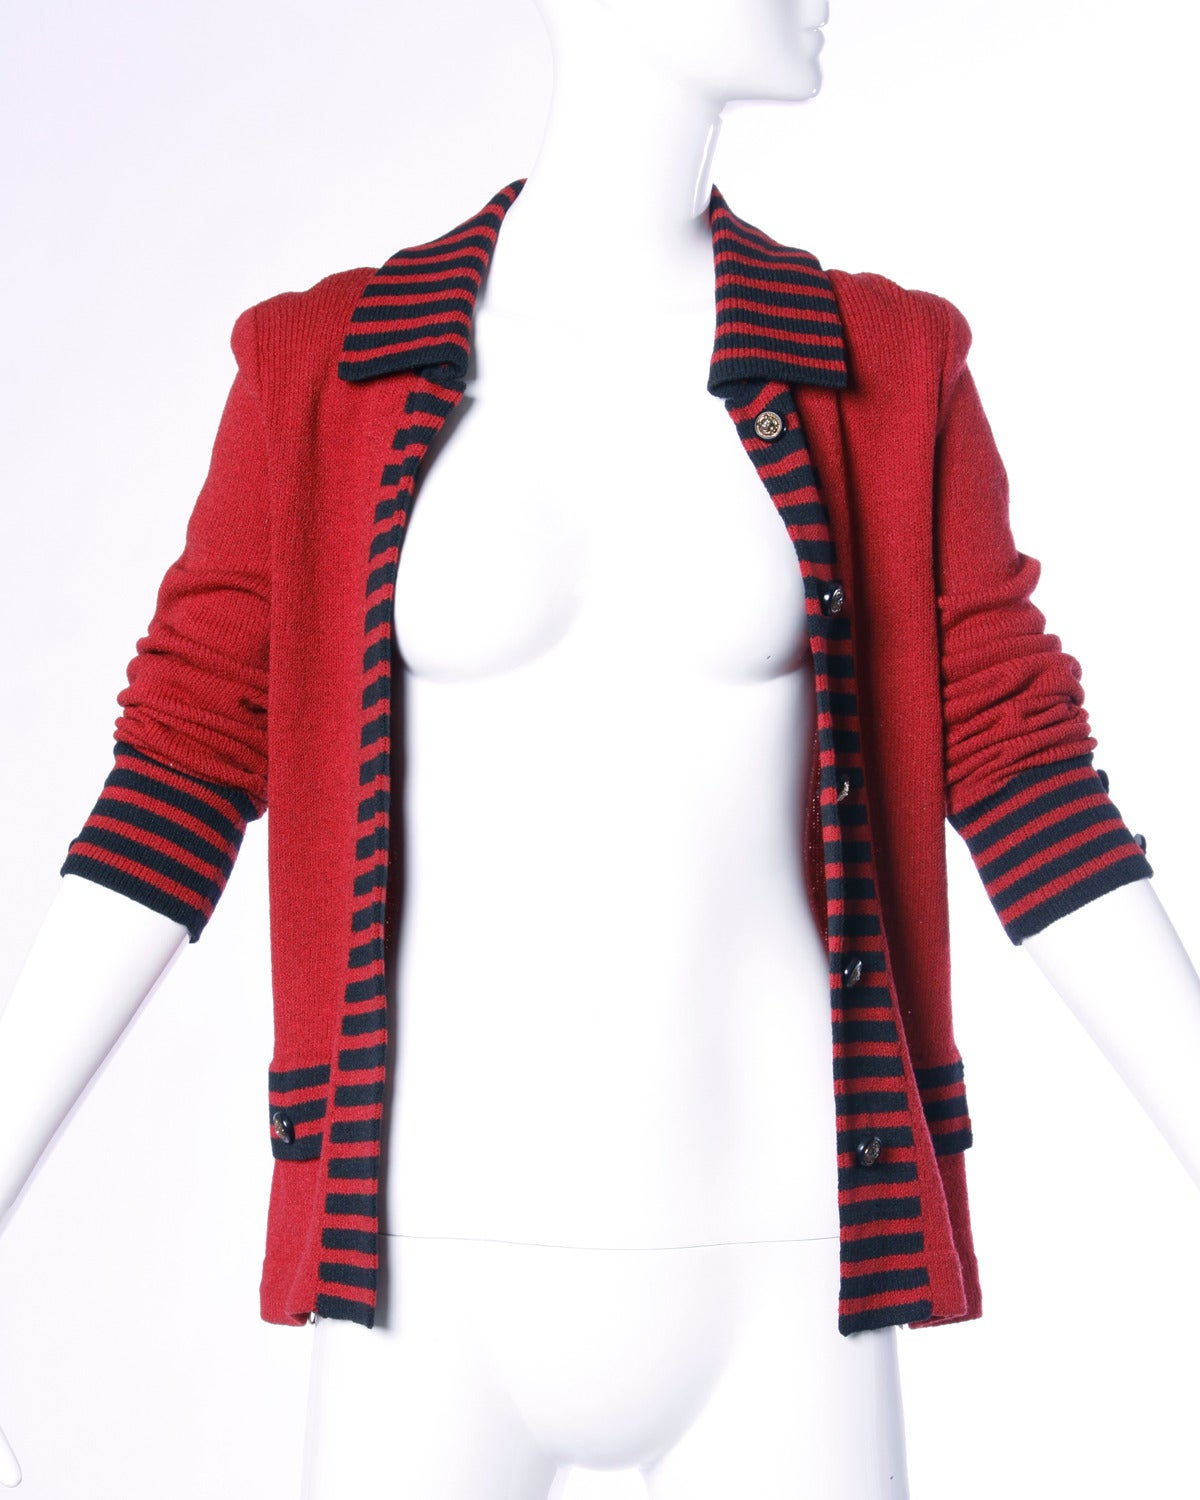 Adolfo Vintage Red & Black Striped Knit Cardigan Sweater or Suit Jacket For Sale 2